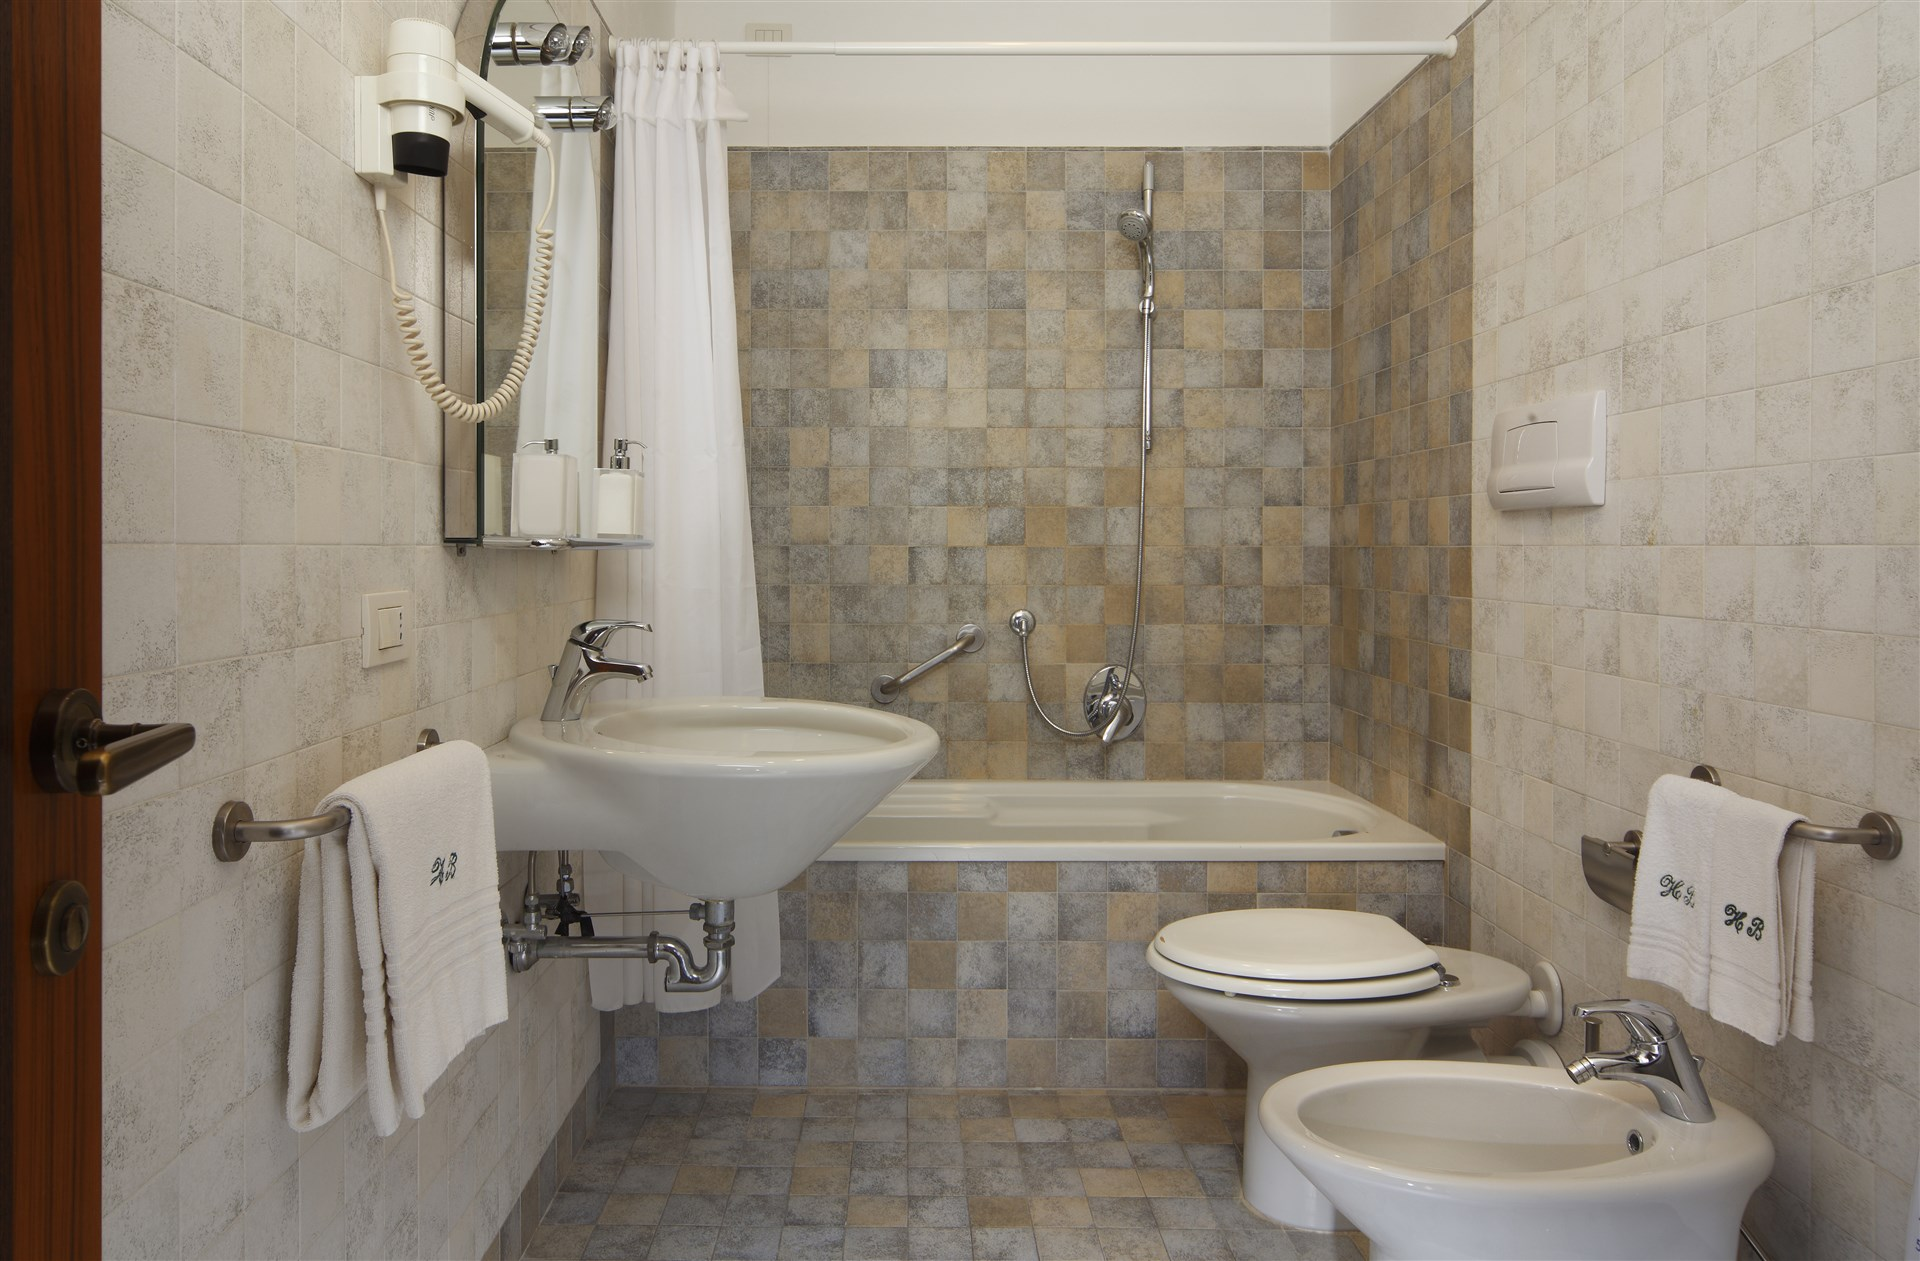 07-The-bathroom-is-supplied-with-bath-tub-and-shower-together-with-hairdryer